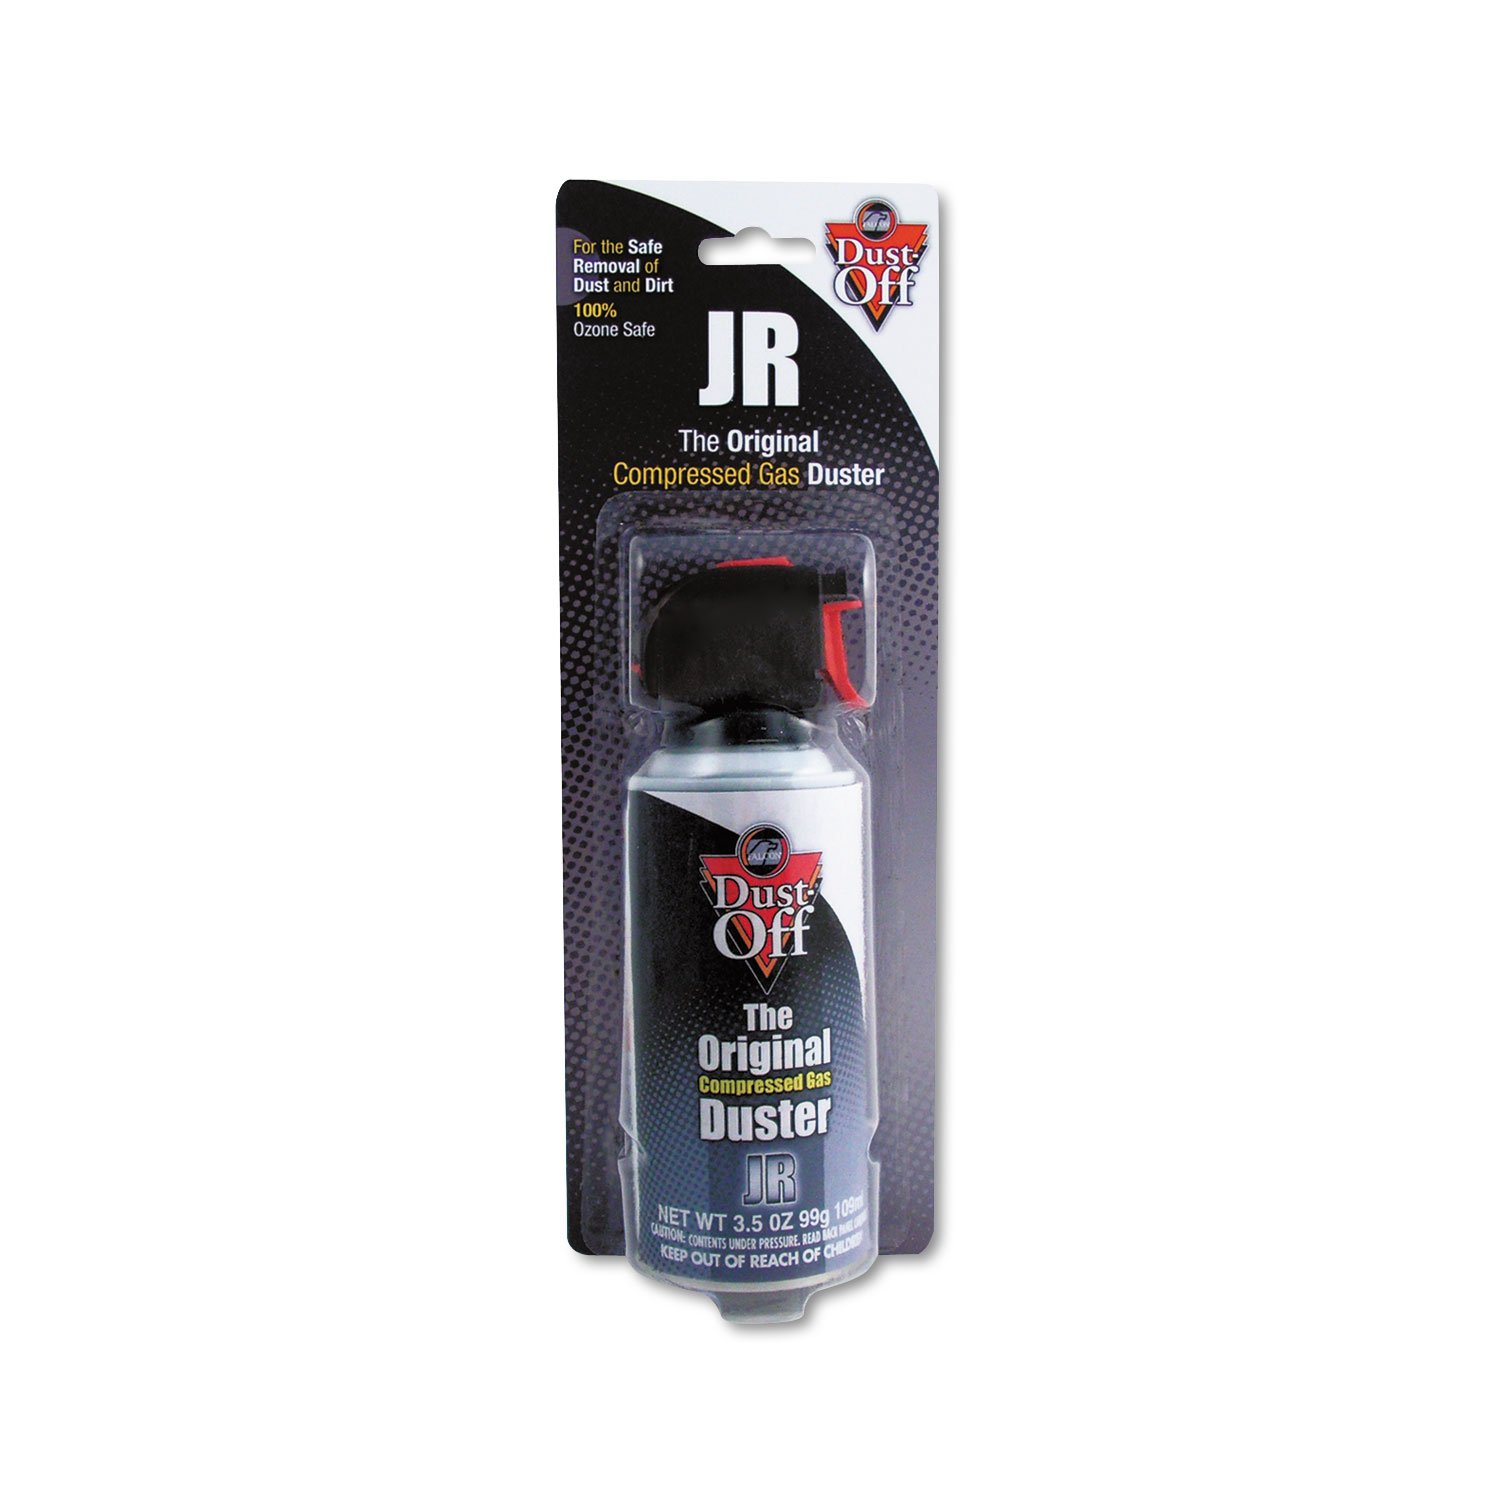 FALDPSJC - Dust-off Disposable Compressed Gas Duster by Dust-Off